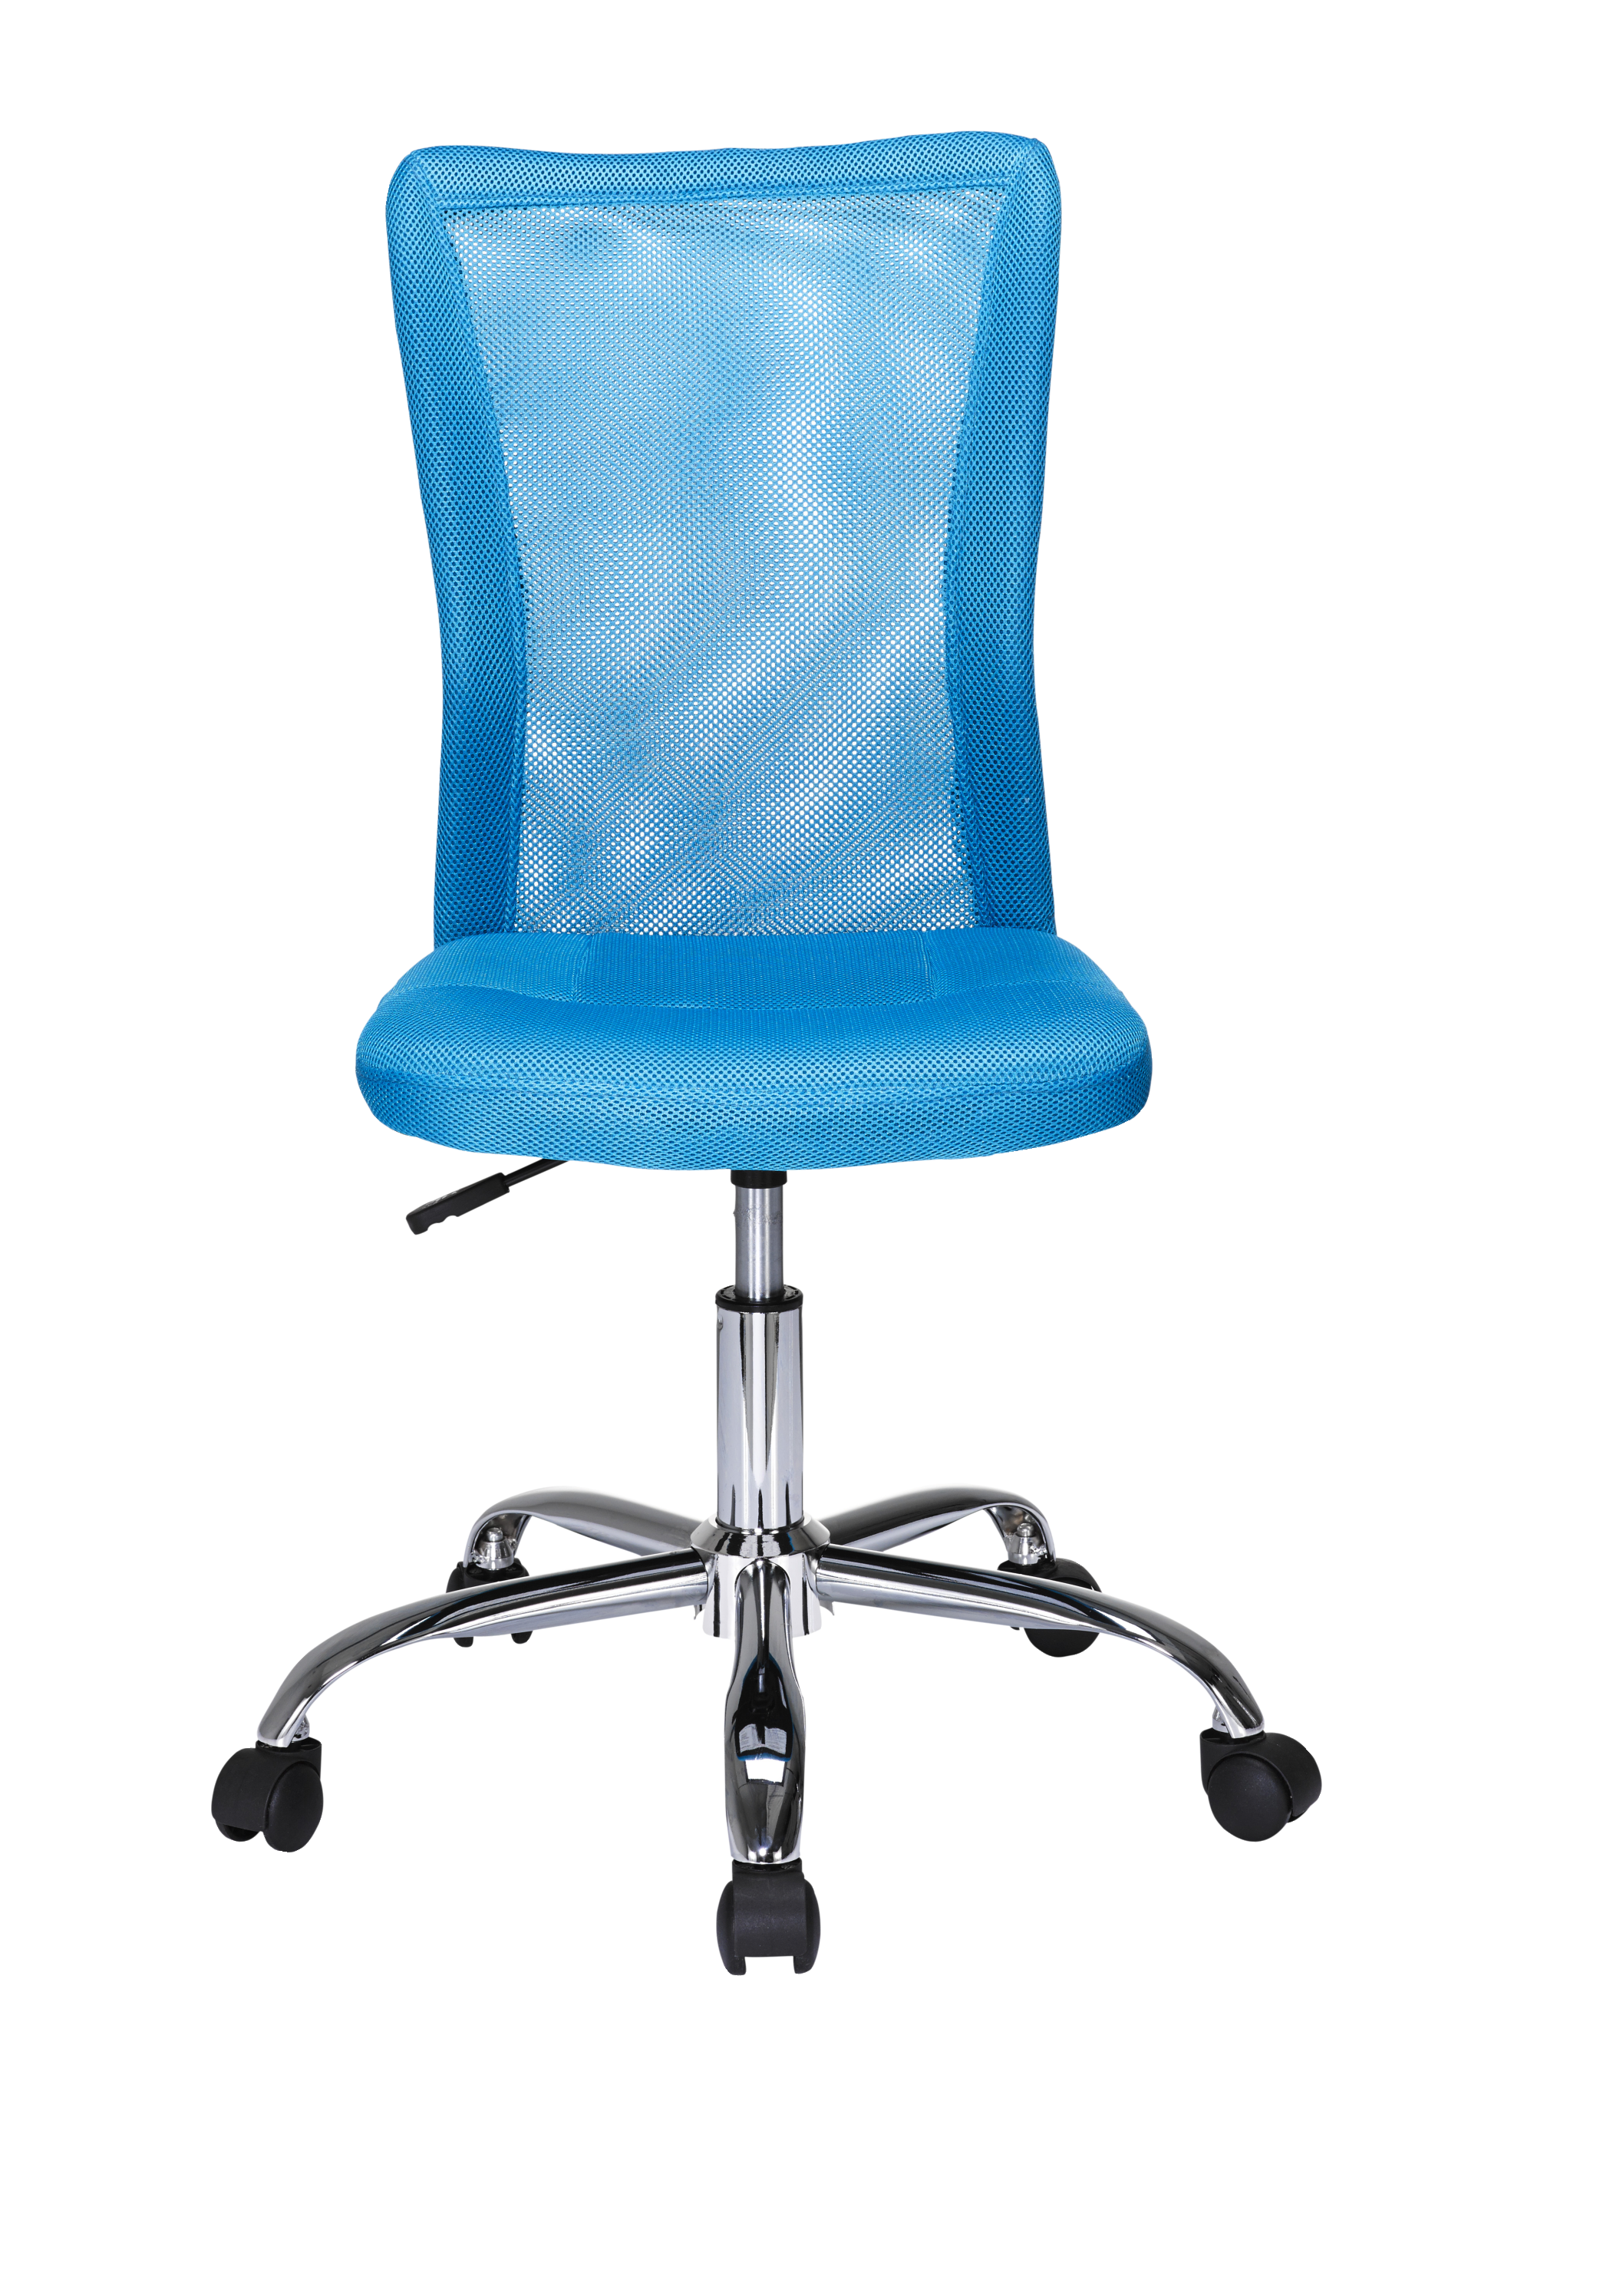 antrim mesh task chair blue more colour for my office with the